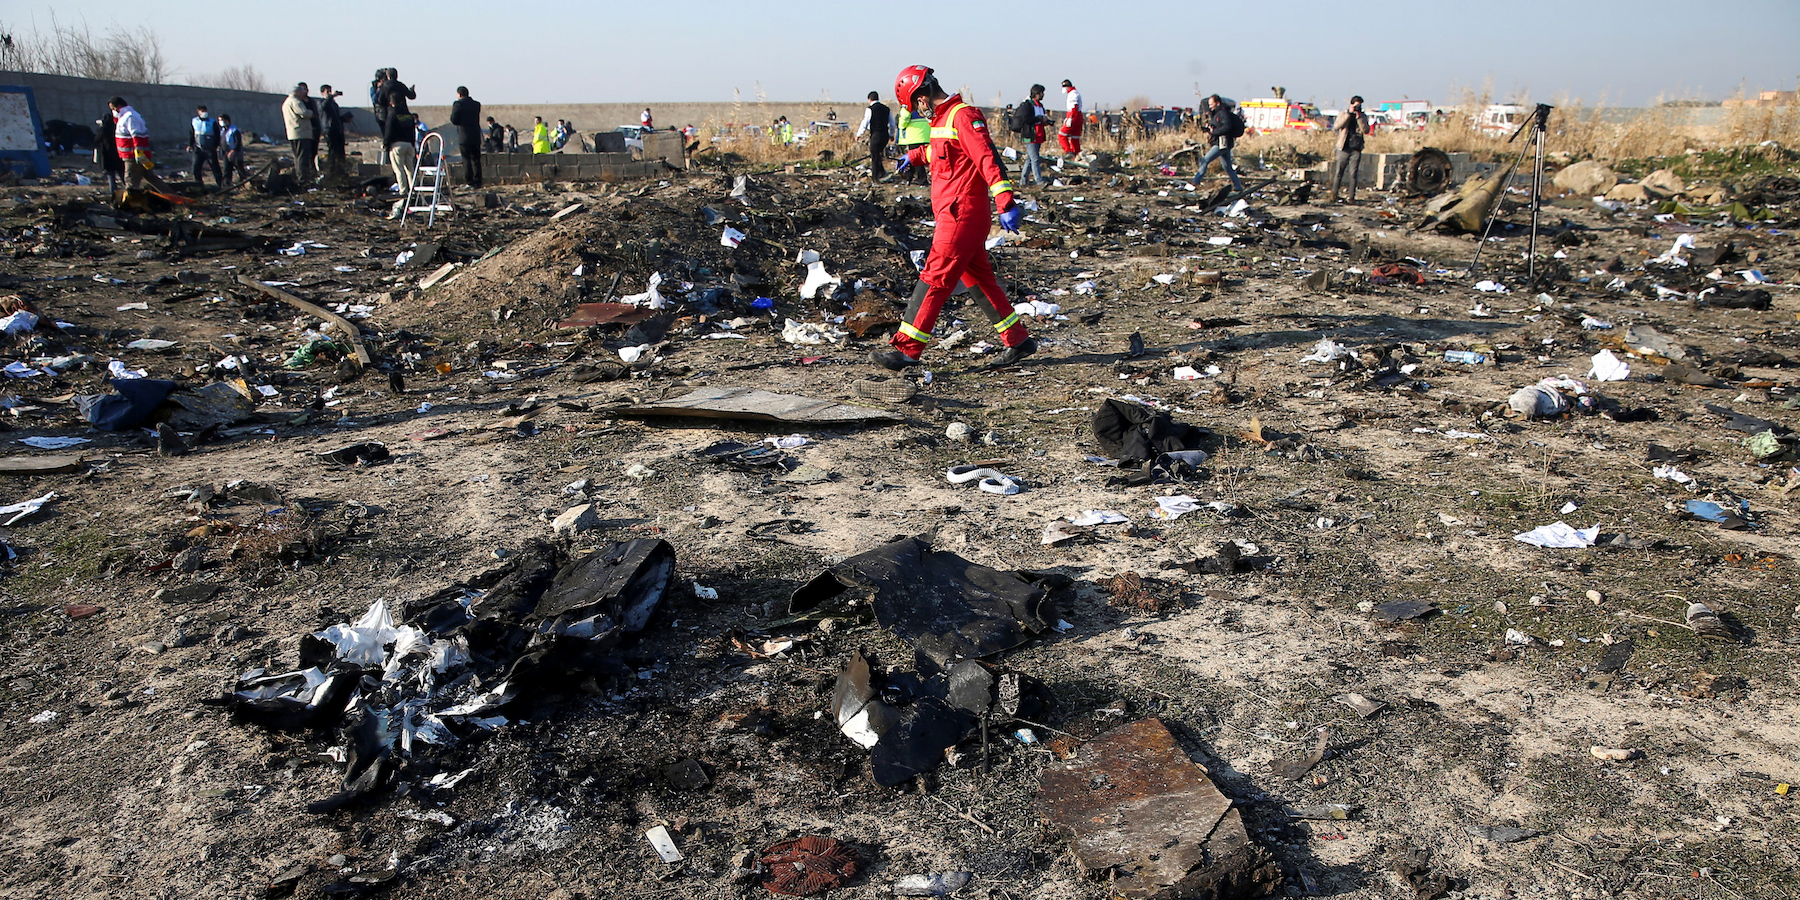 The US believes that Iran shot down the damaged Ukrainian plane in Tehran, according to CBS